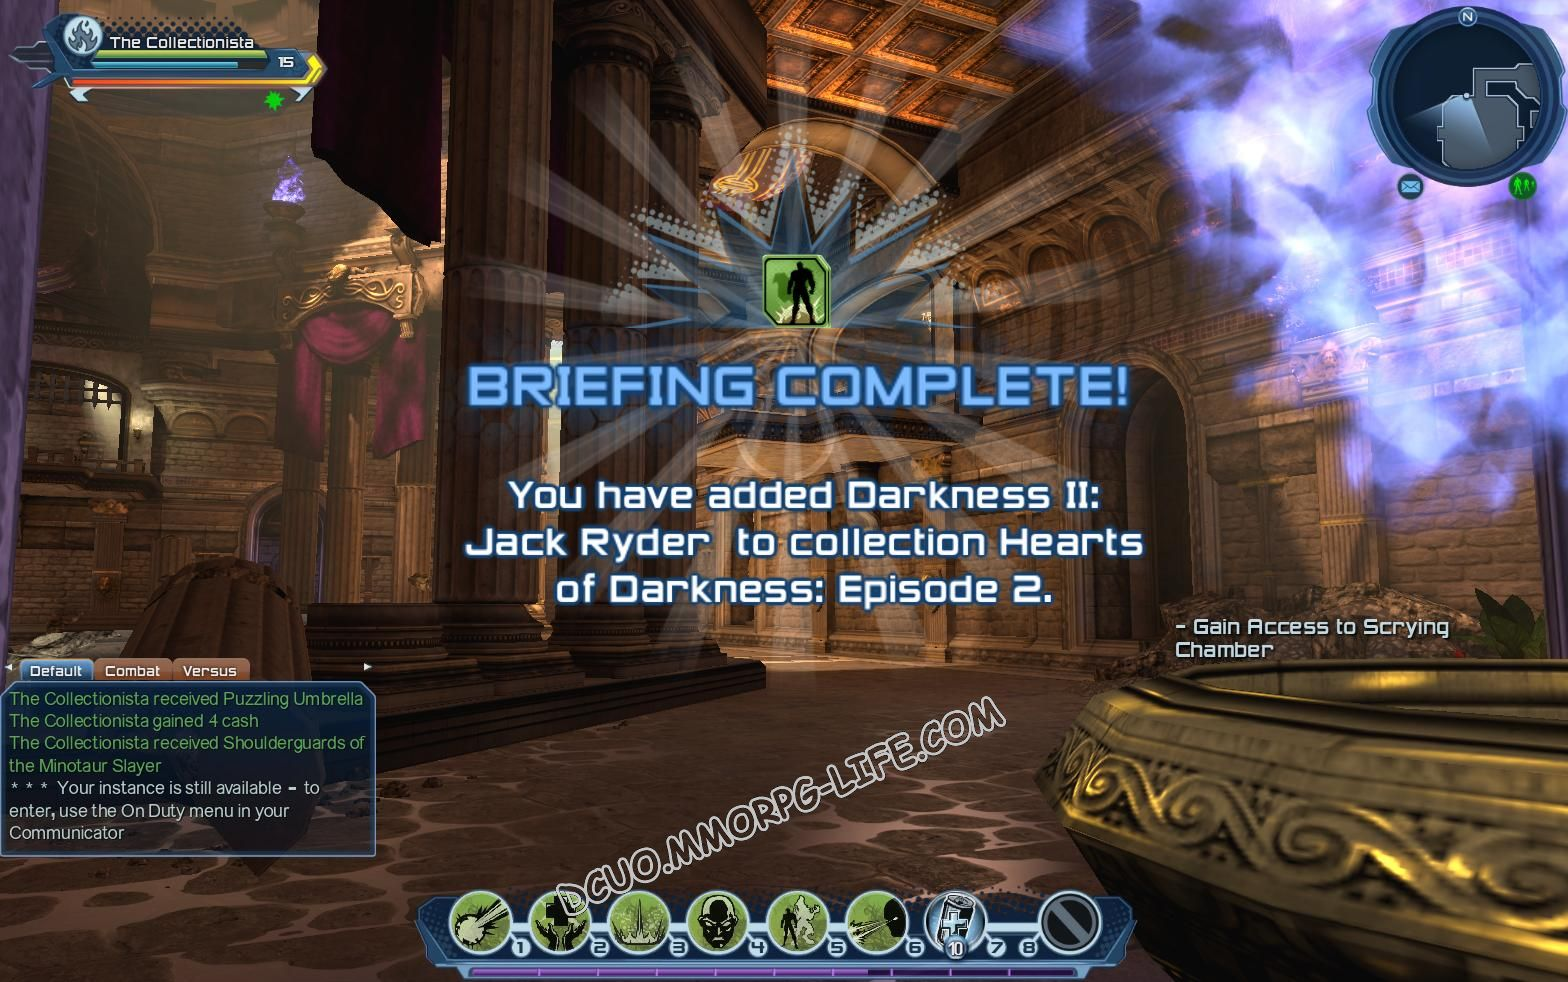 Briefing: Hearts of Darkness: Episode 2, step 2 Darkness II: Jack Ryder  image 1909 middle size